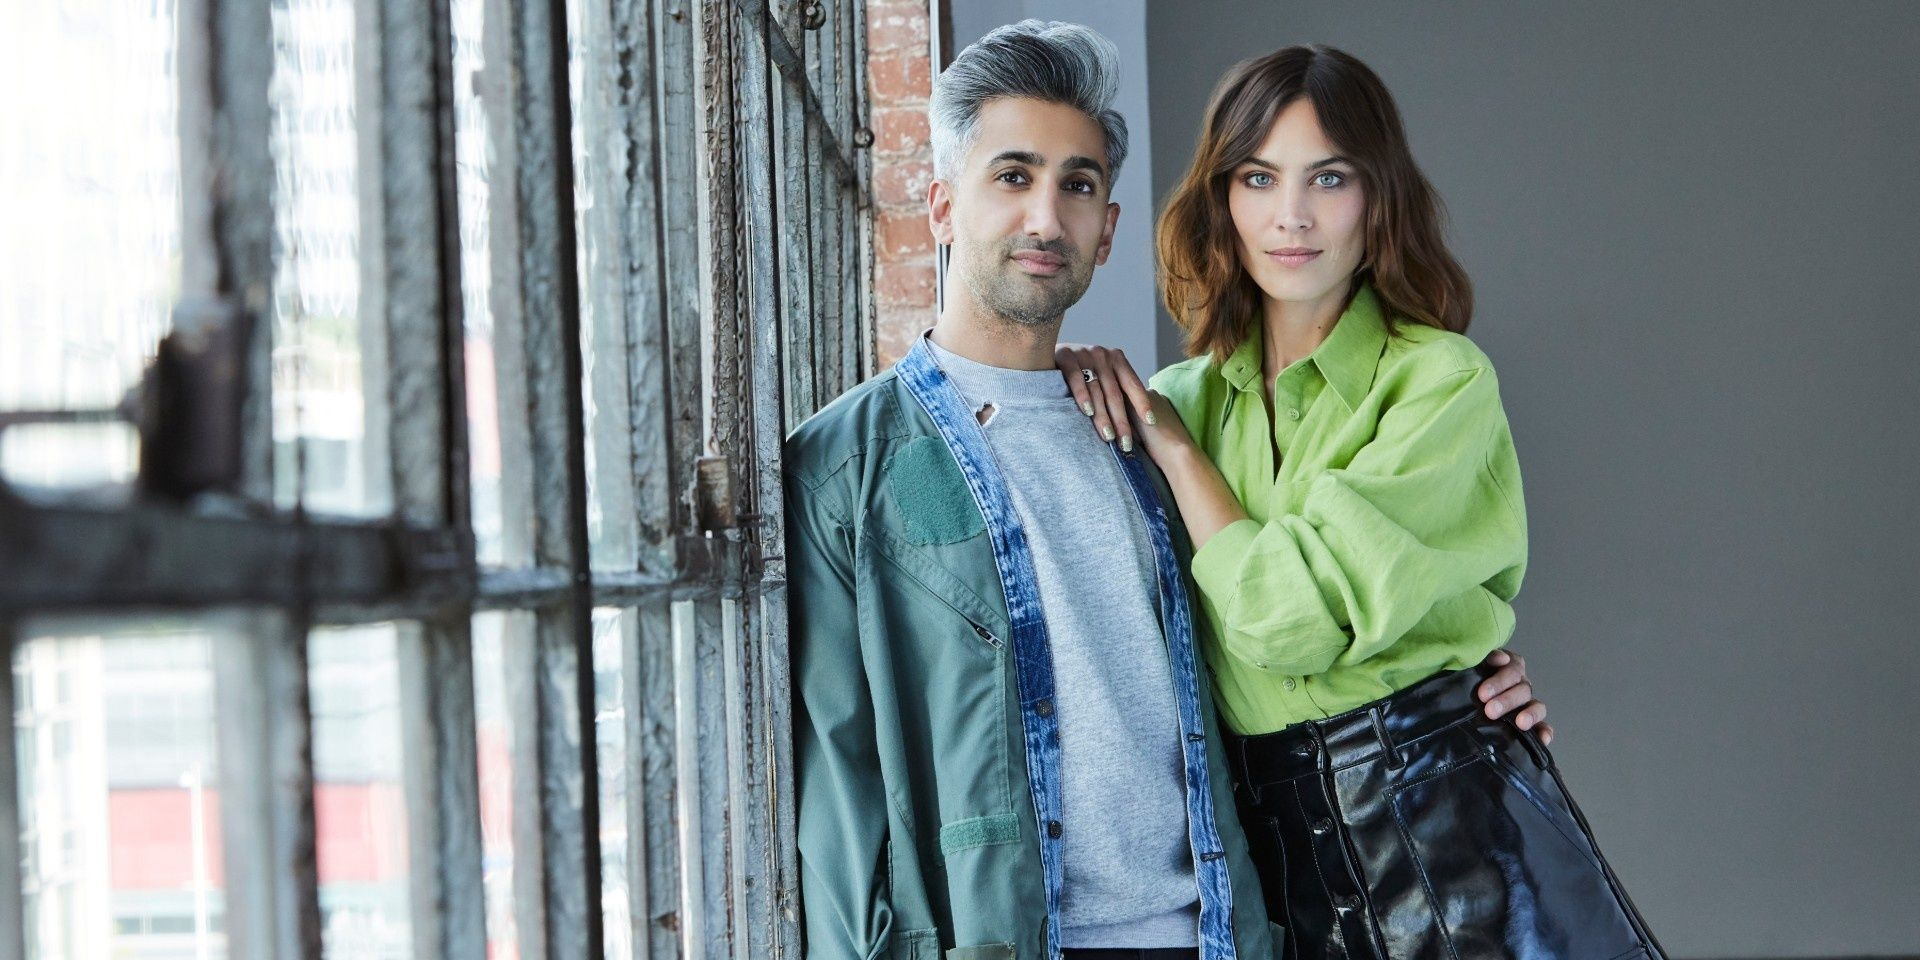 See The Trailer For Netflix's New Competition Show 'Next In Fashion'